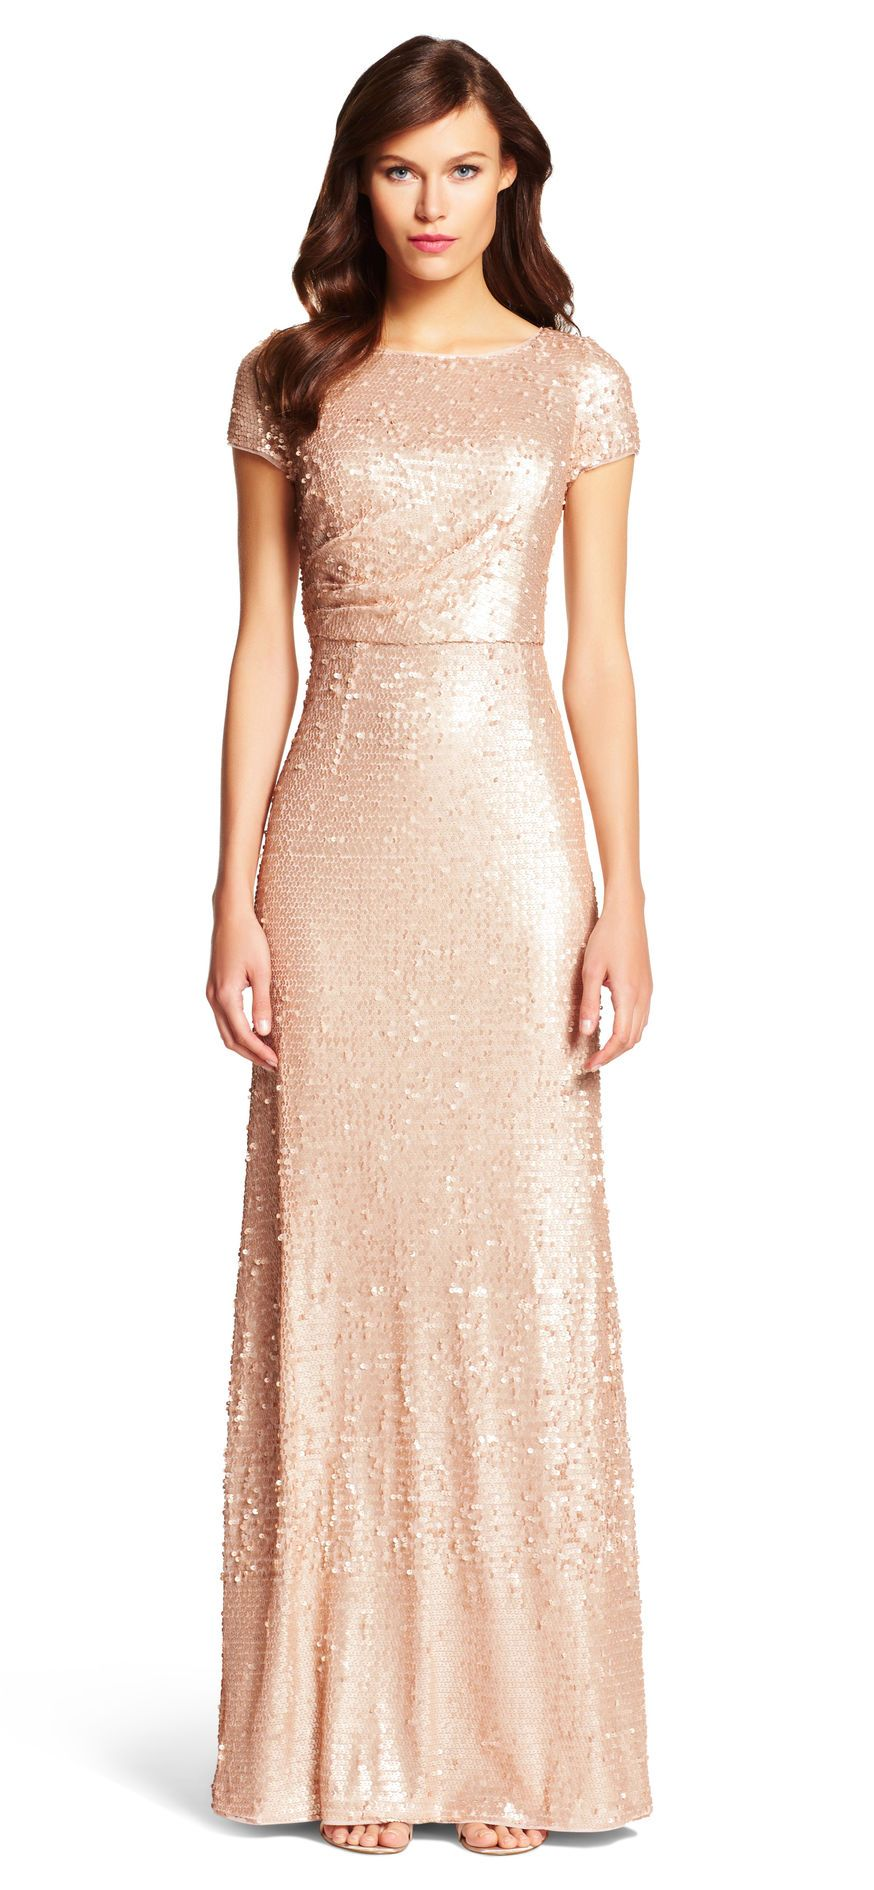 Short Sleeve Sequin Gown - Adrianna Papell | Glamorous Gowns and ...